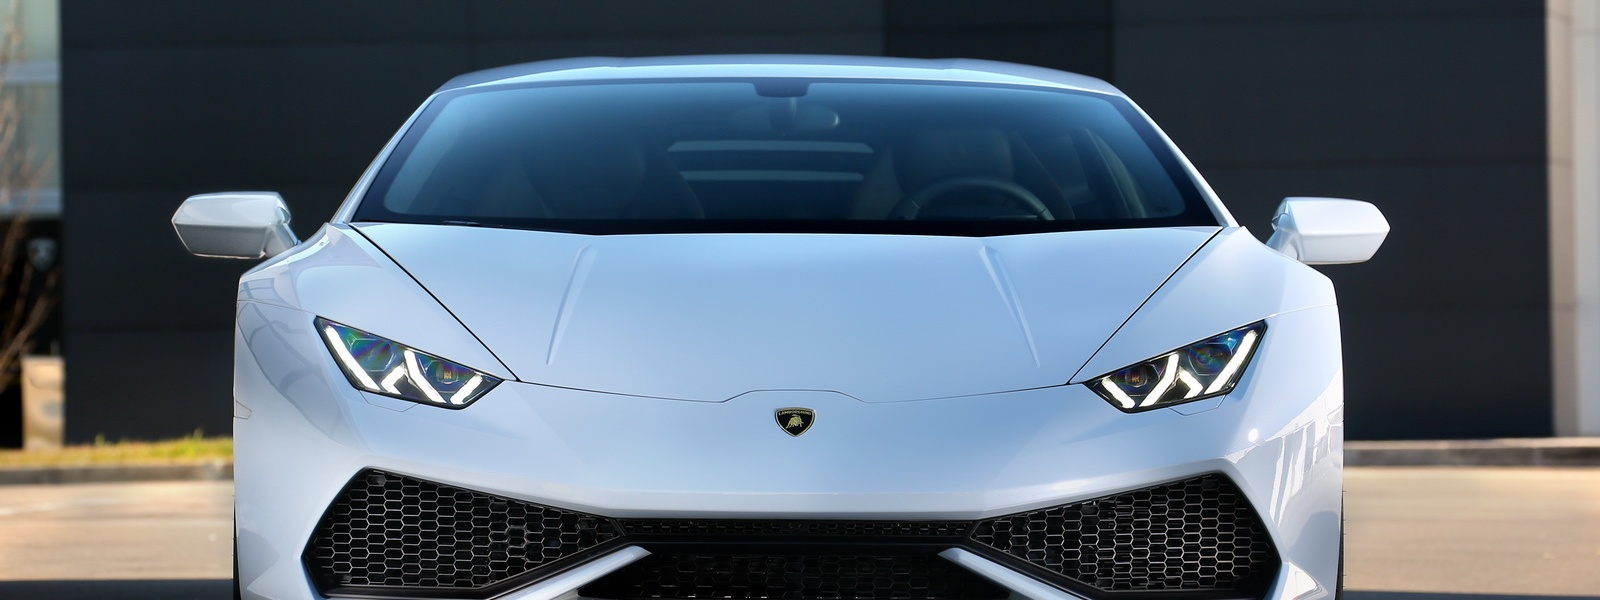 facelifted-lamborghini-huracan-reports-4.jpg